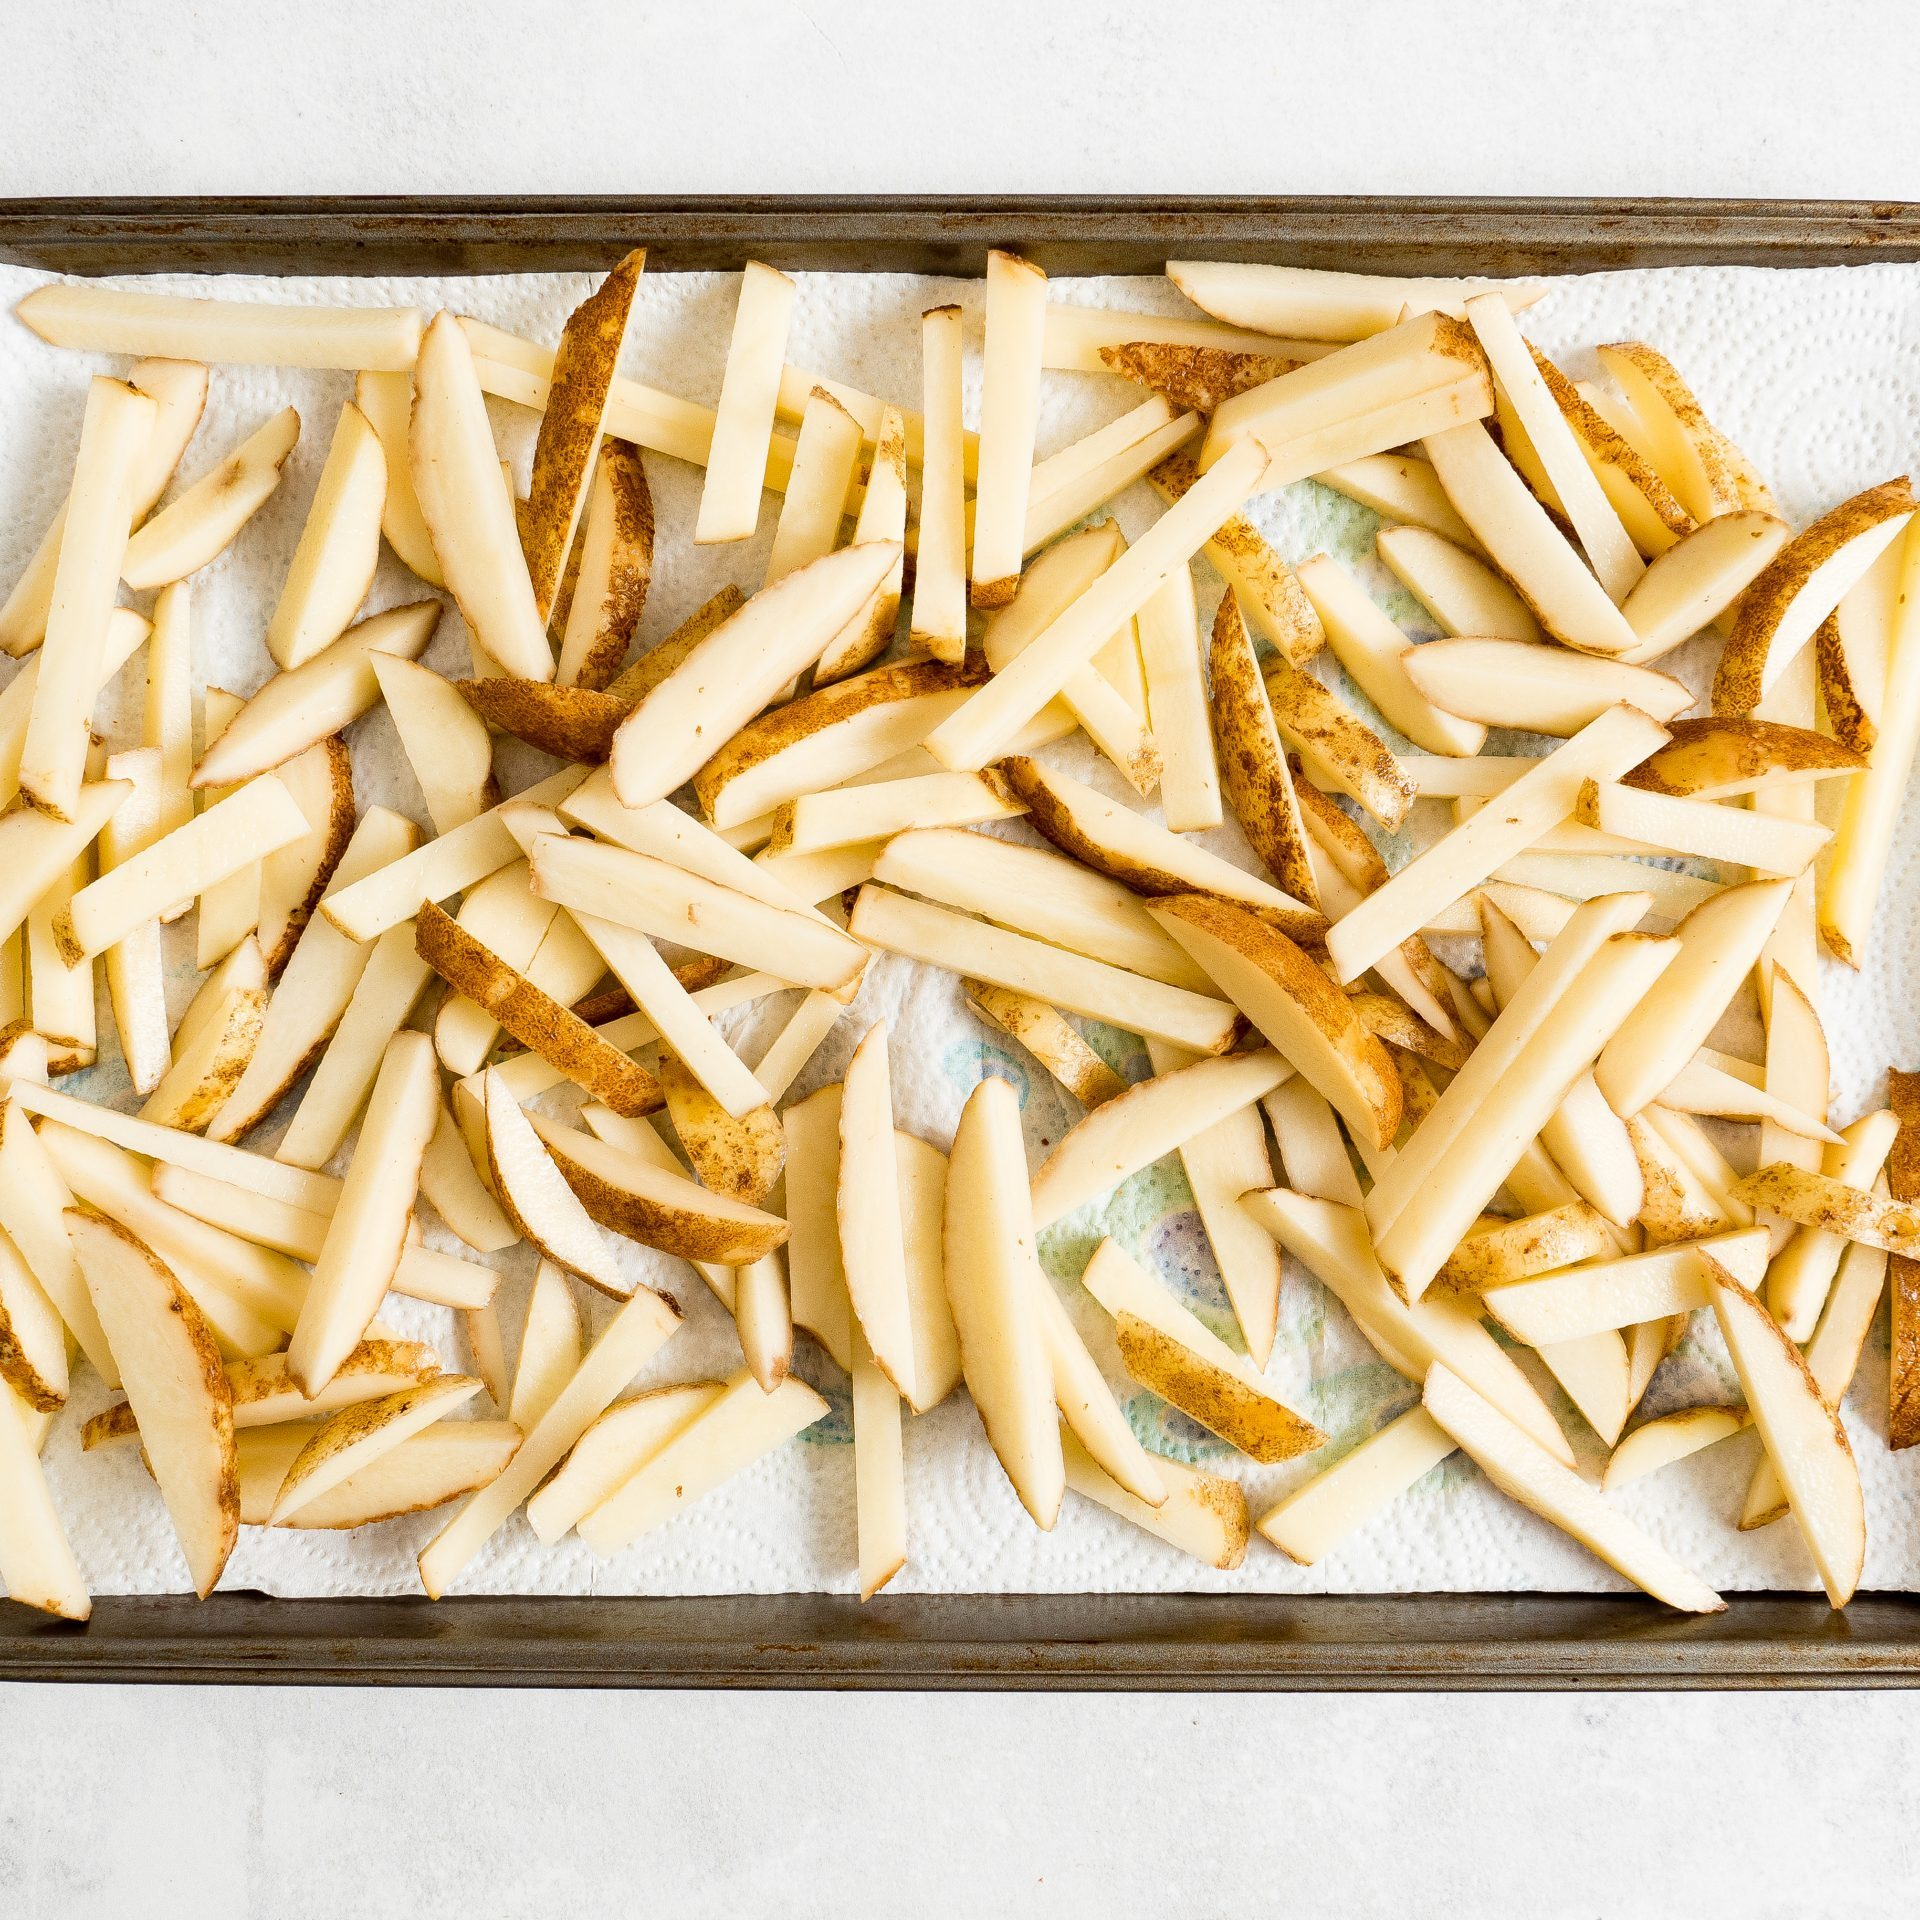 french fries drying on paper towel picture